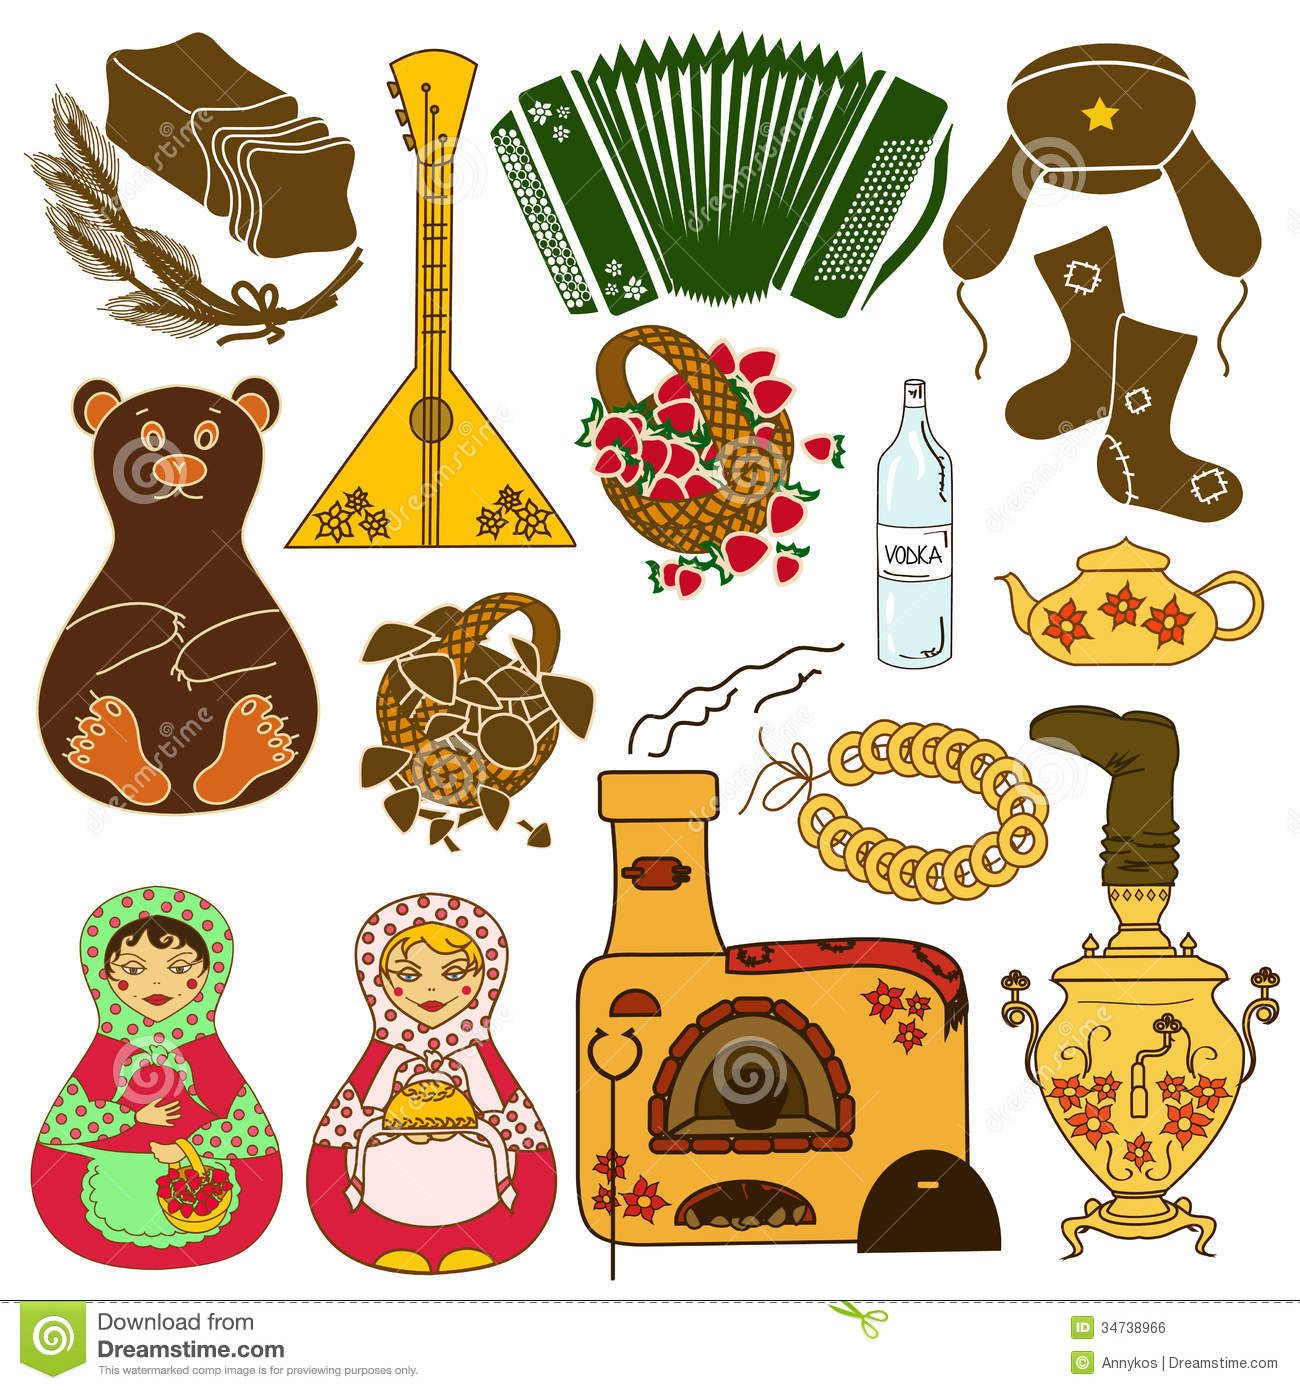 General things that represent Russia White Nights